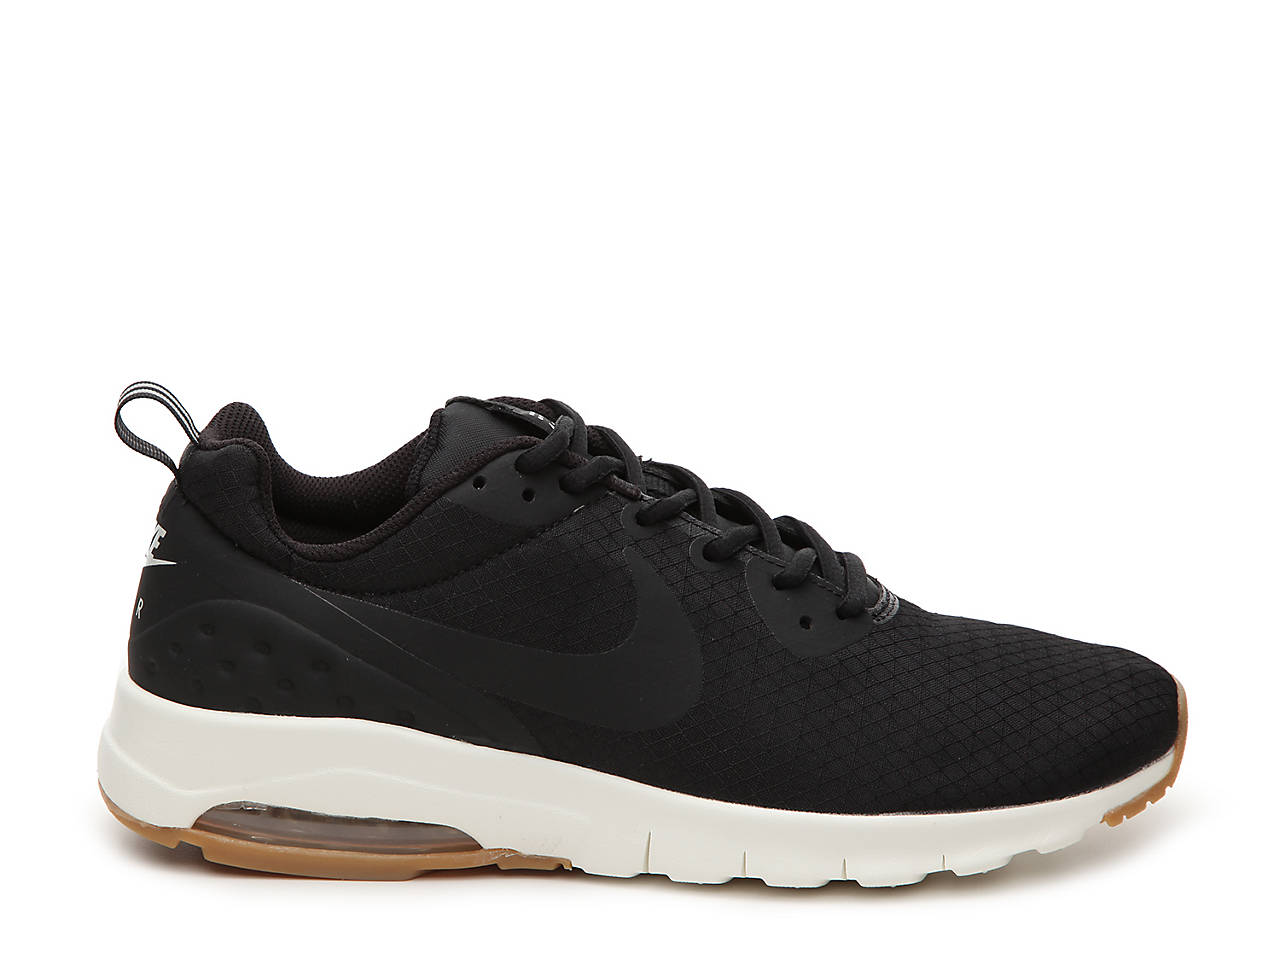 Air Max Motion LW SE Sneaker Men's